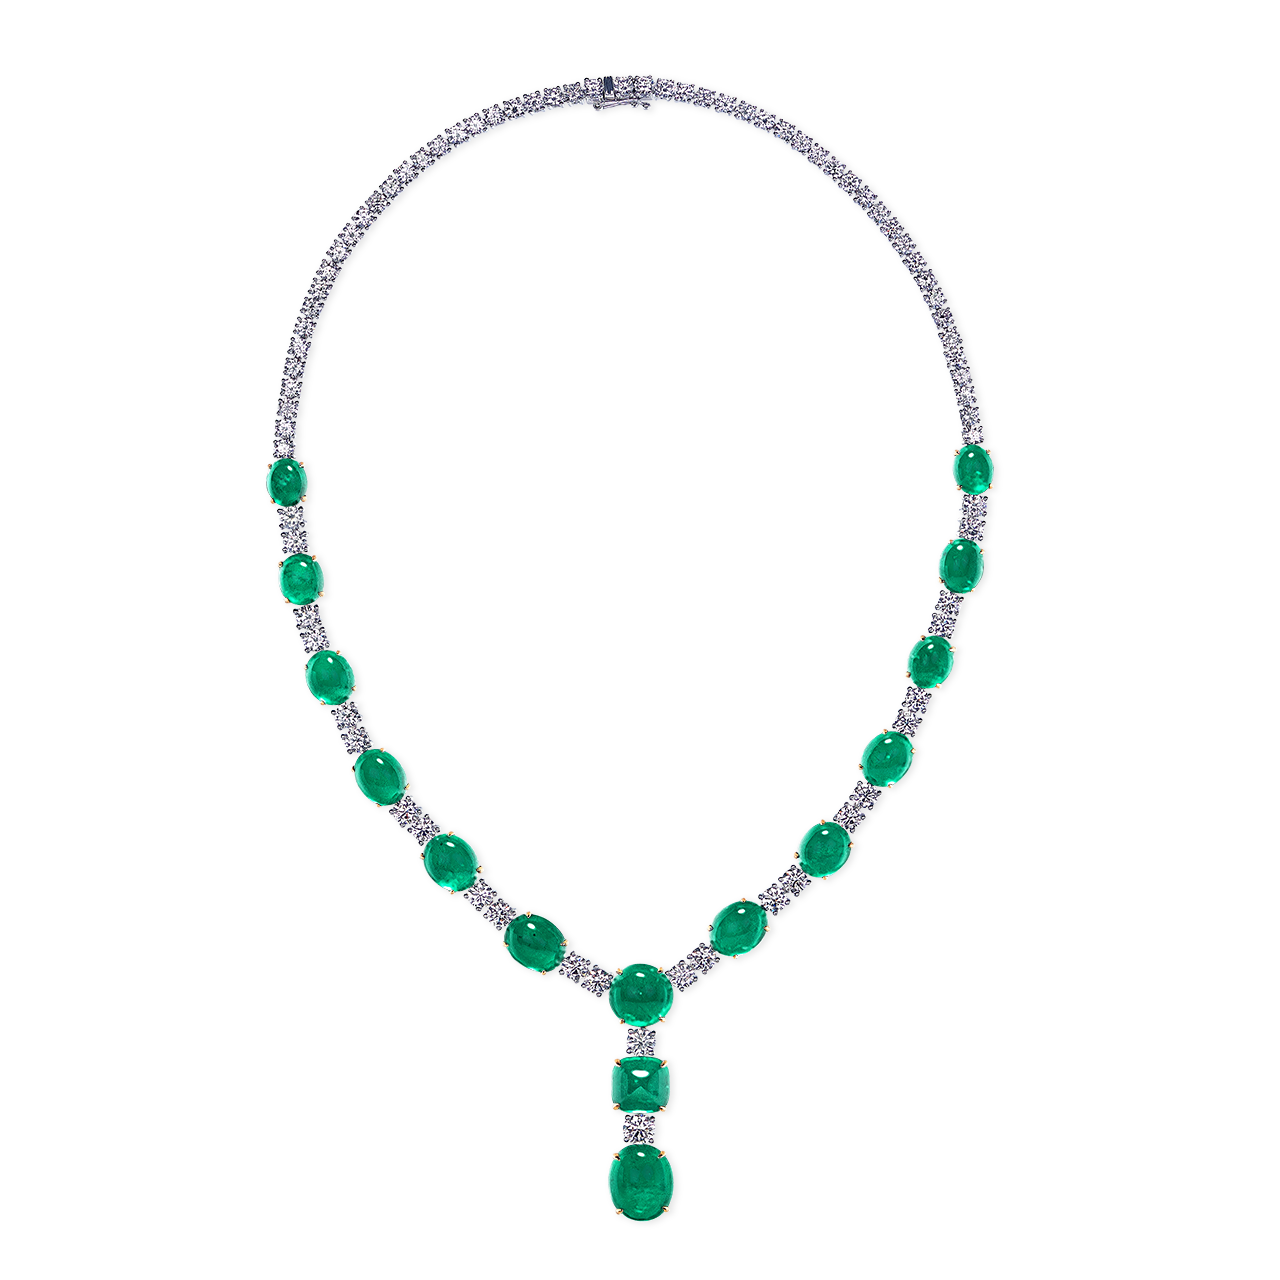 GIA 49.85克拉 哥倫比亞祖母綠鑽石套鍊